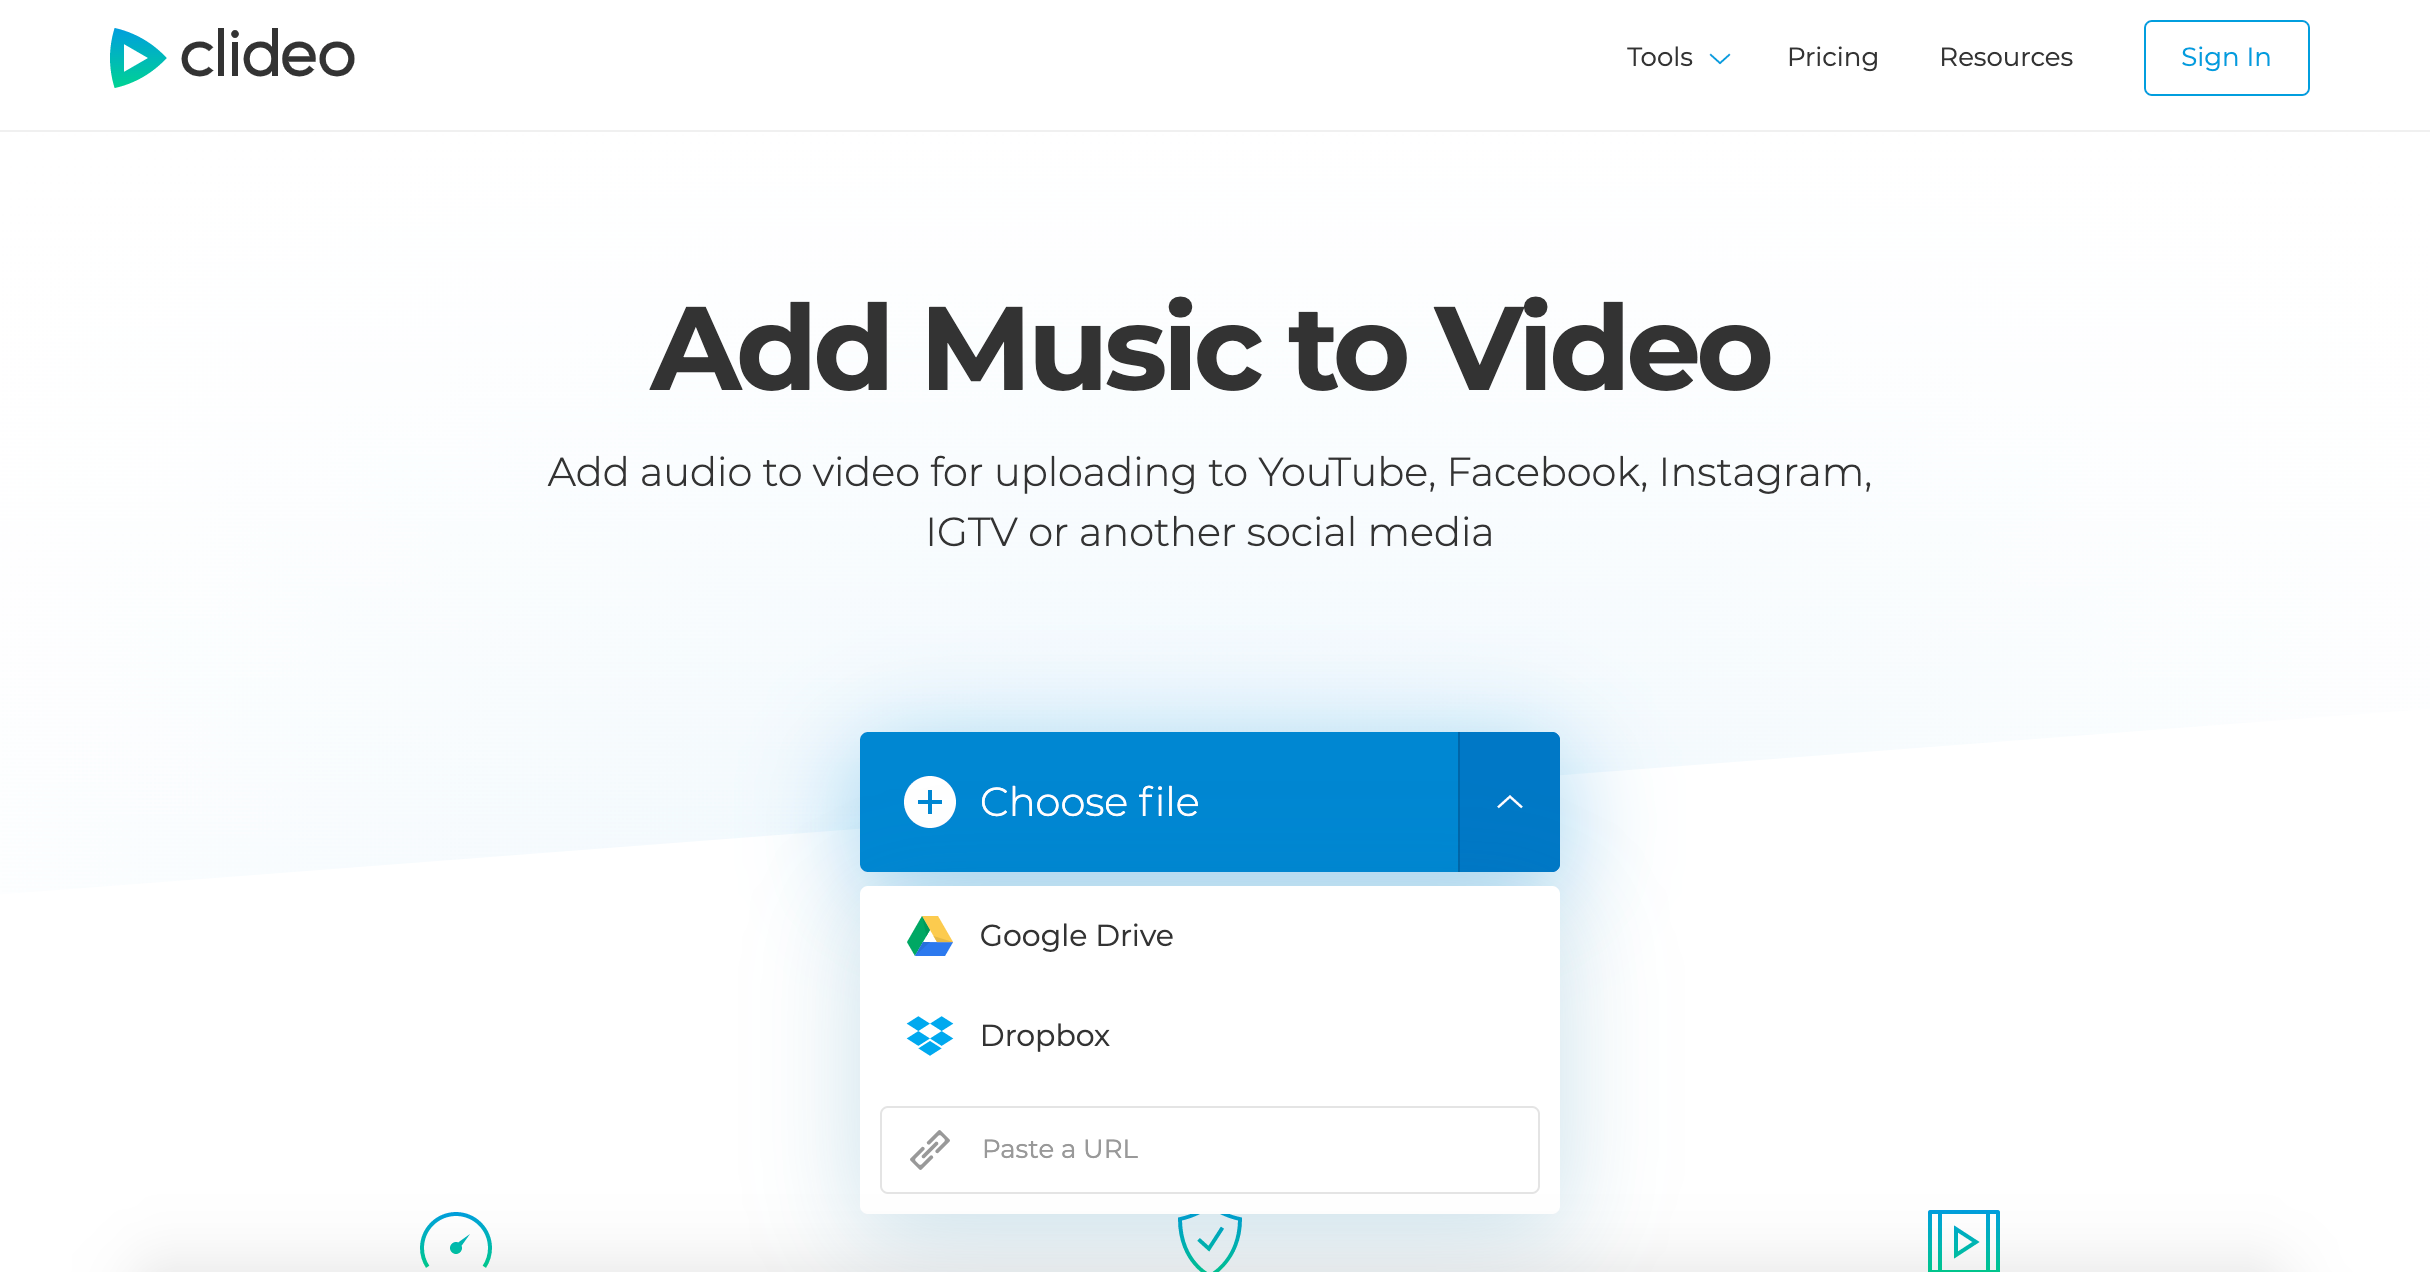 Upload a video from Instagram to add music